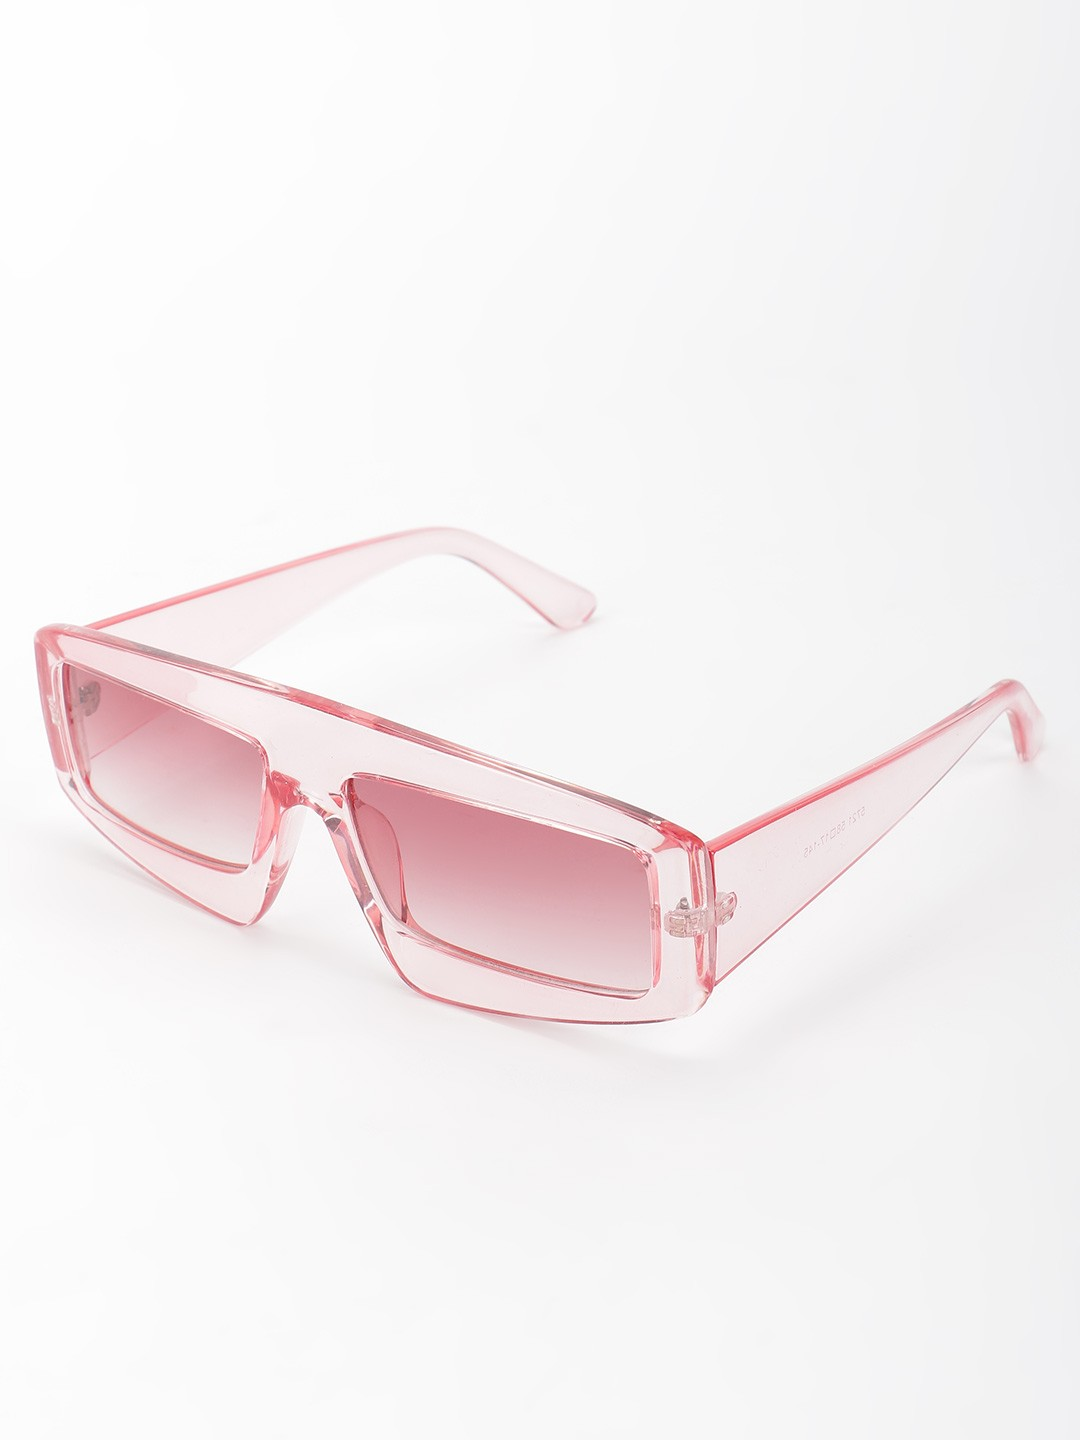 Style Fiesta Pink Coloured Lens Microlab Retro Sunglasses 1